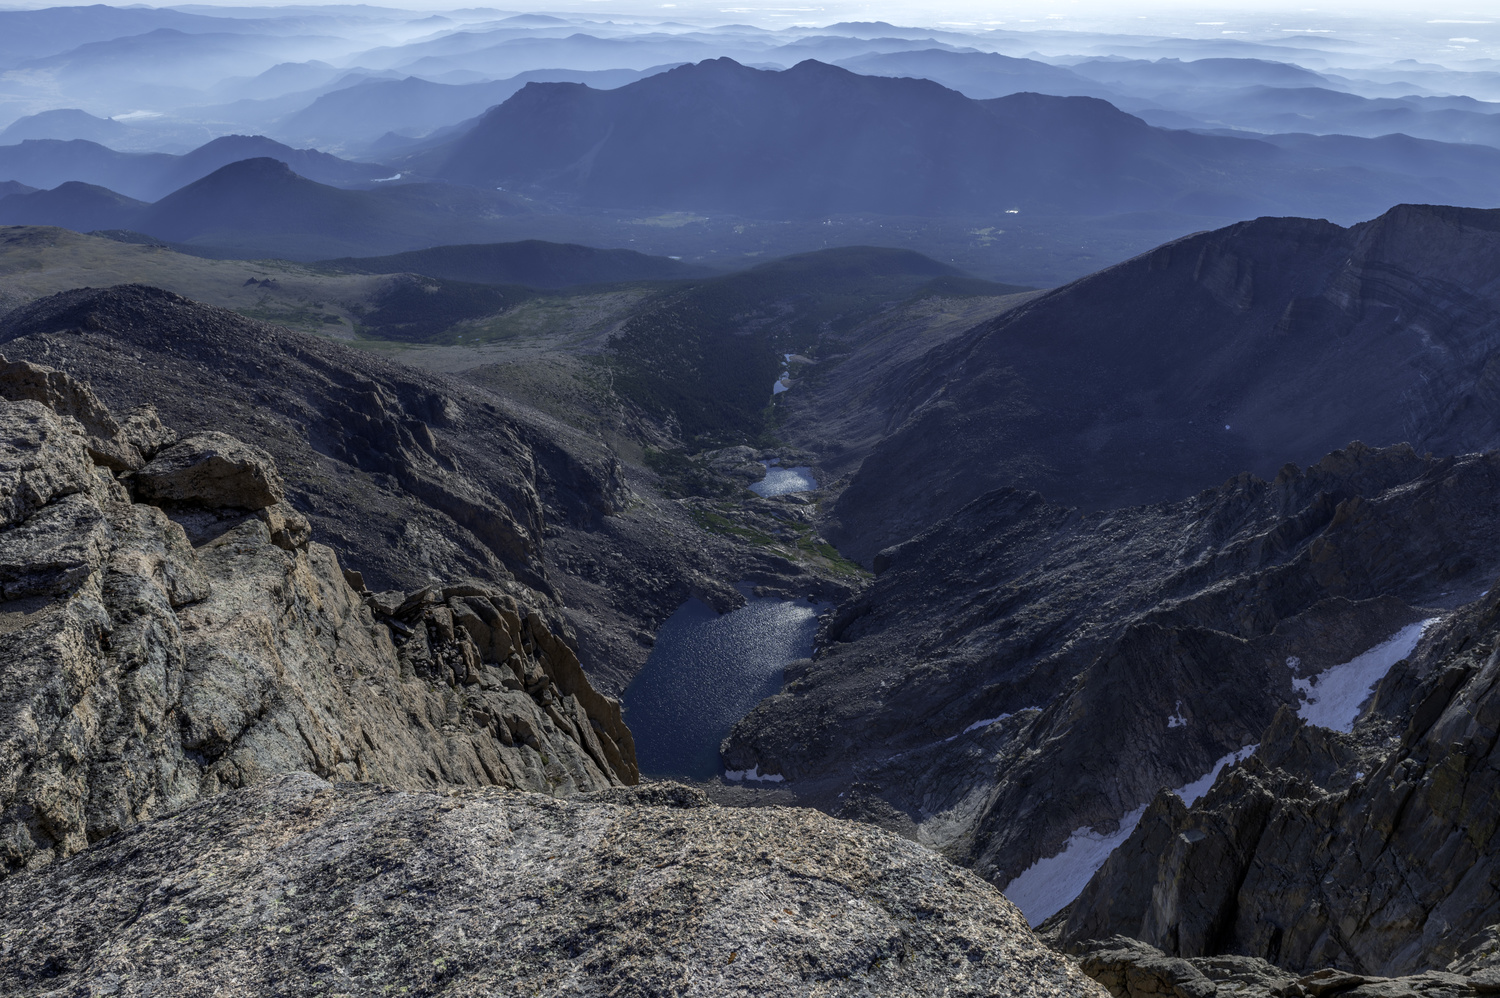 Views from 14,265 ft by Dave Spates